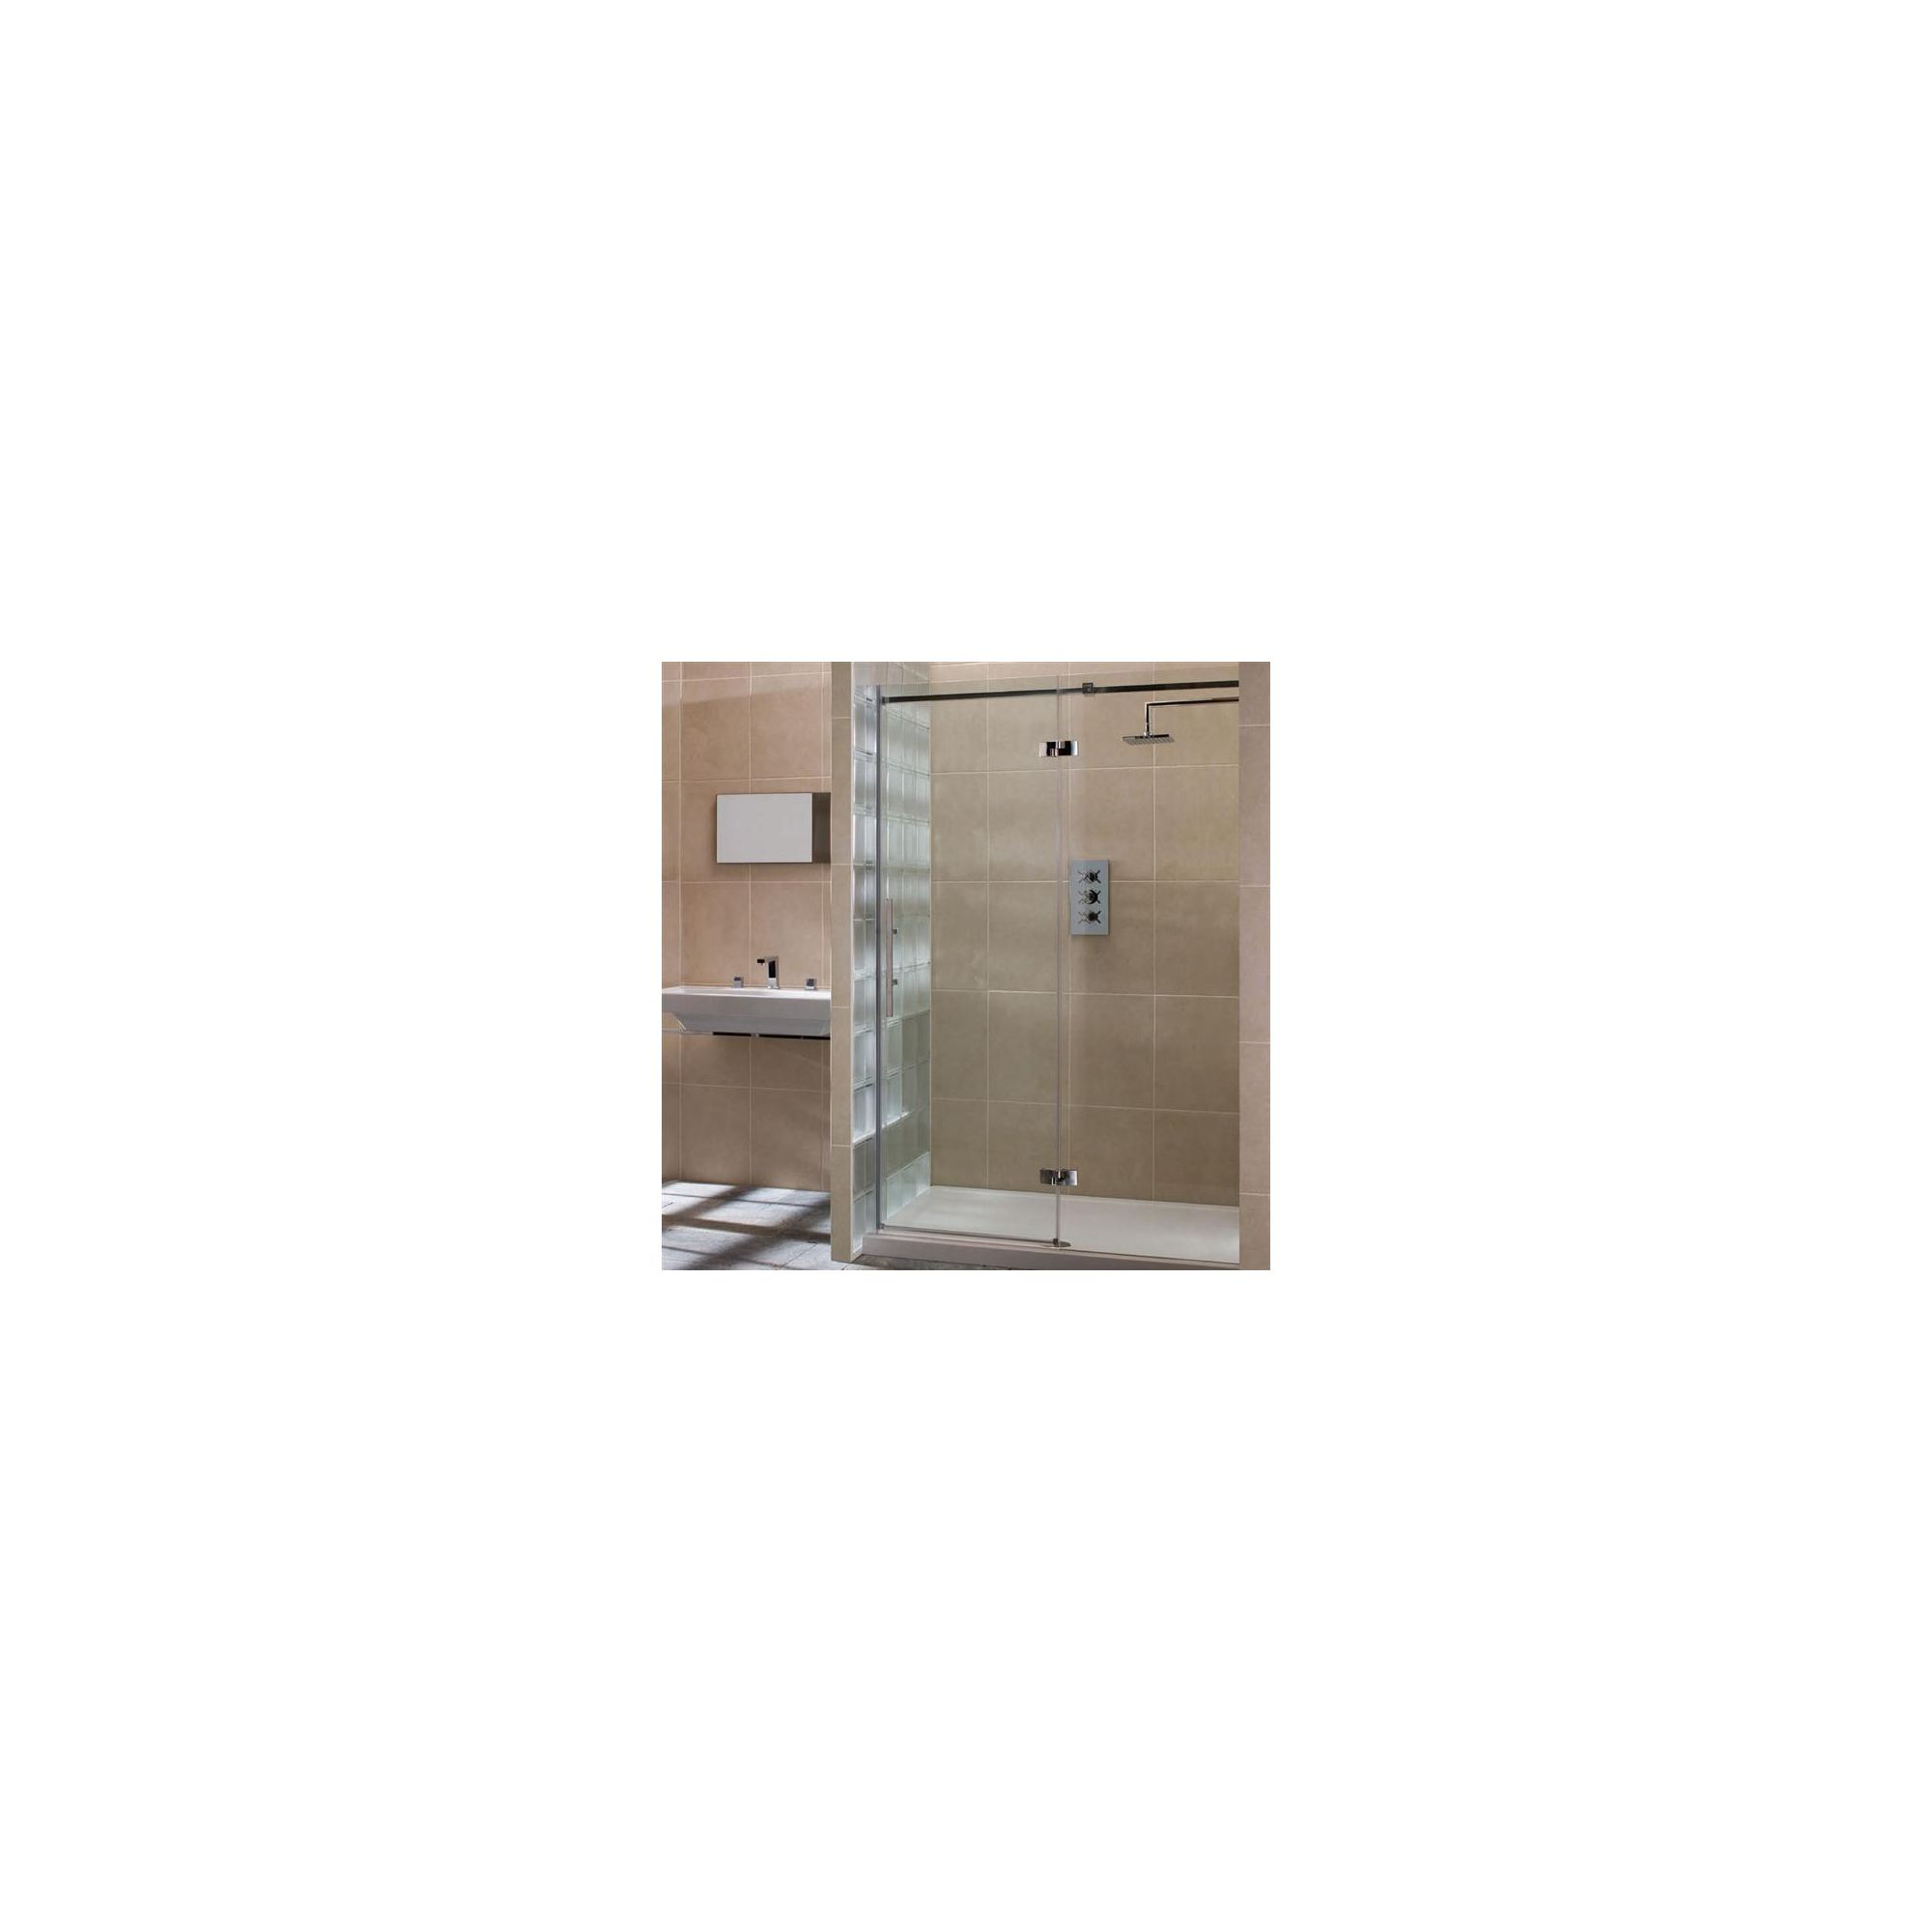 Merlyn Vivid Nine Hinged Door Alcove Shower Enclosure with Inline Panel, 1600mm x 800mm, Right Handed, Low Profile Tray, 8mm Glass at Tesco Direct